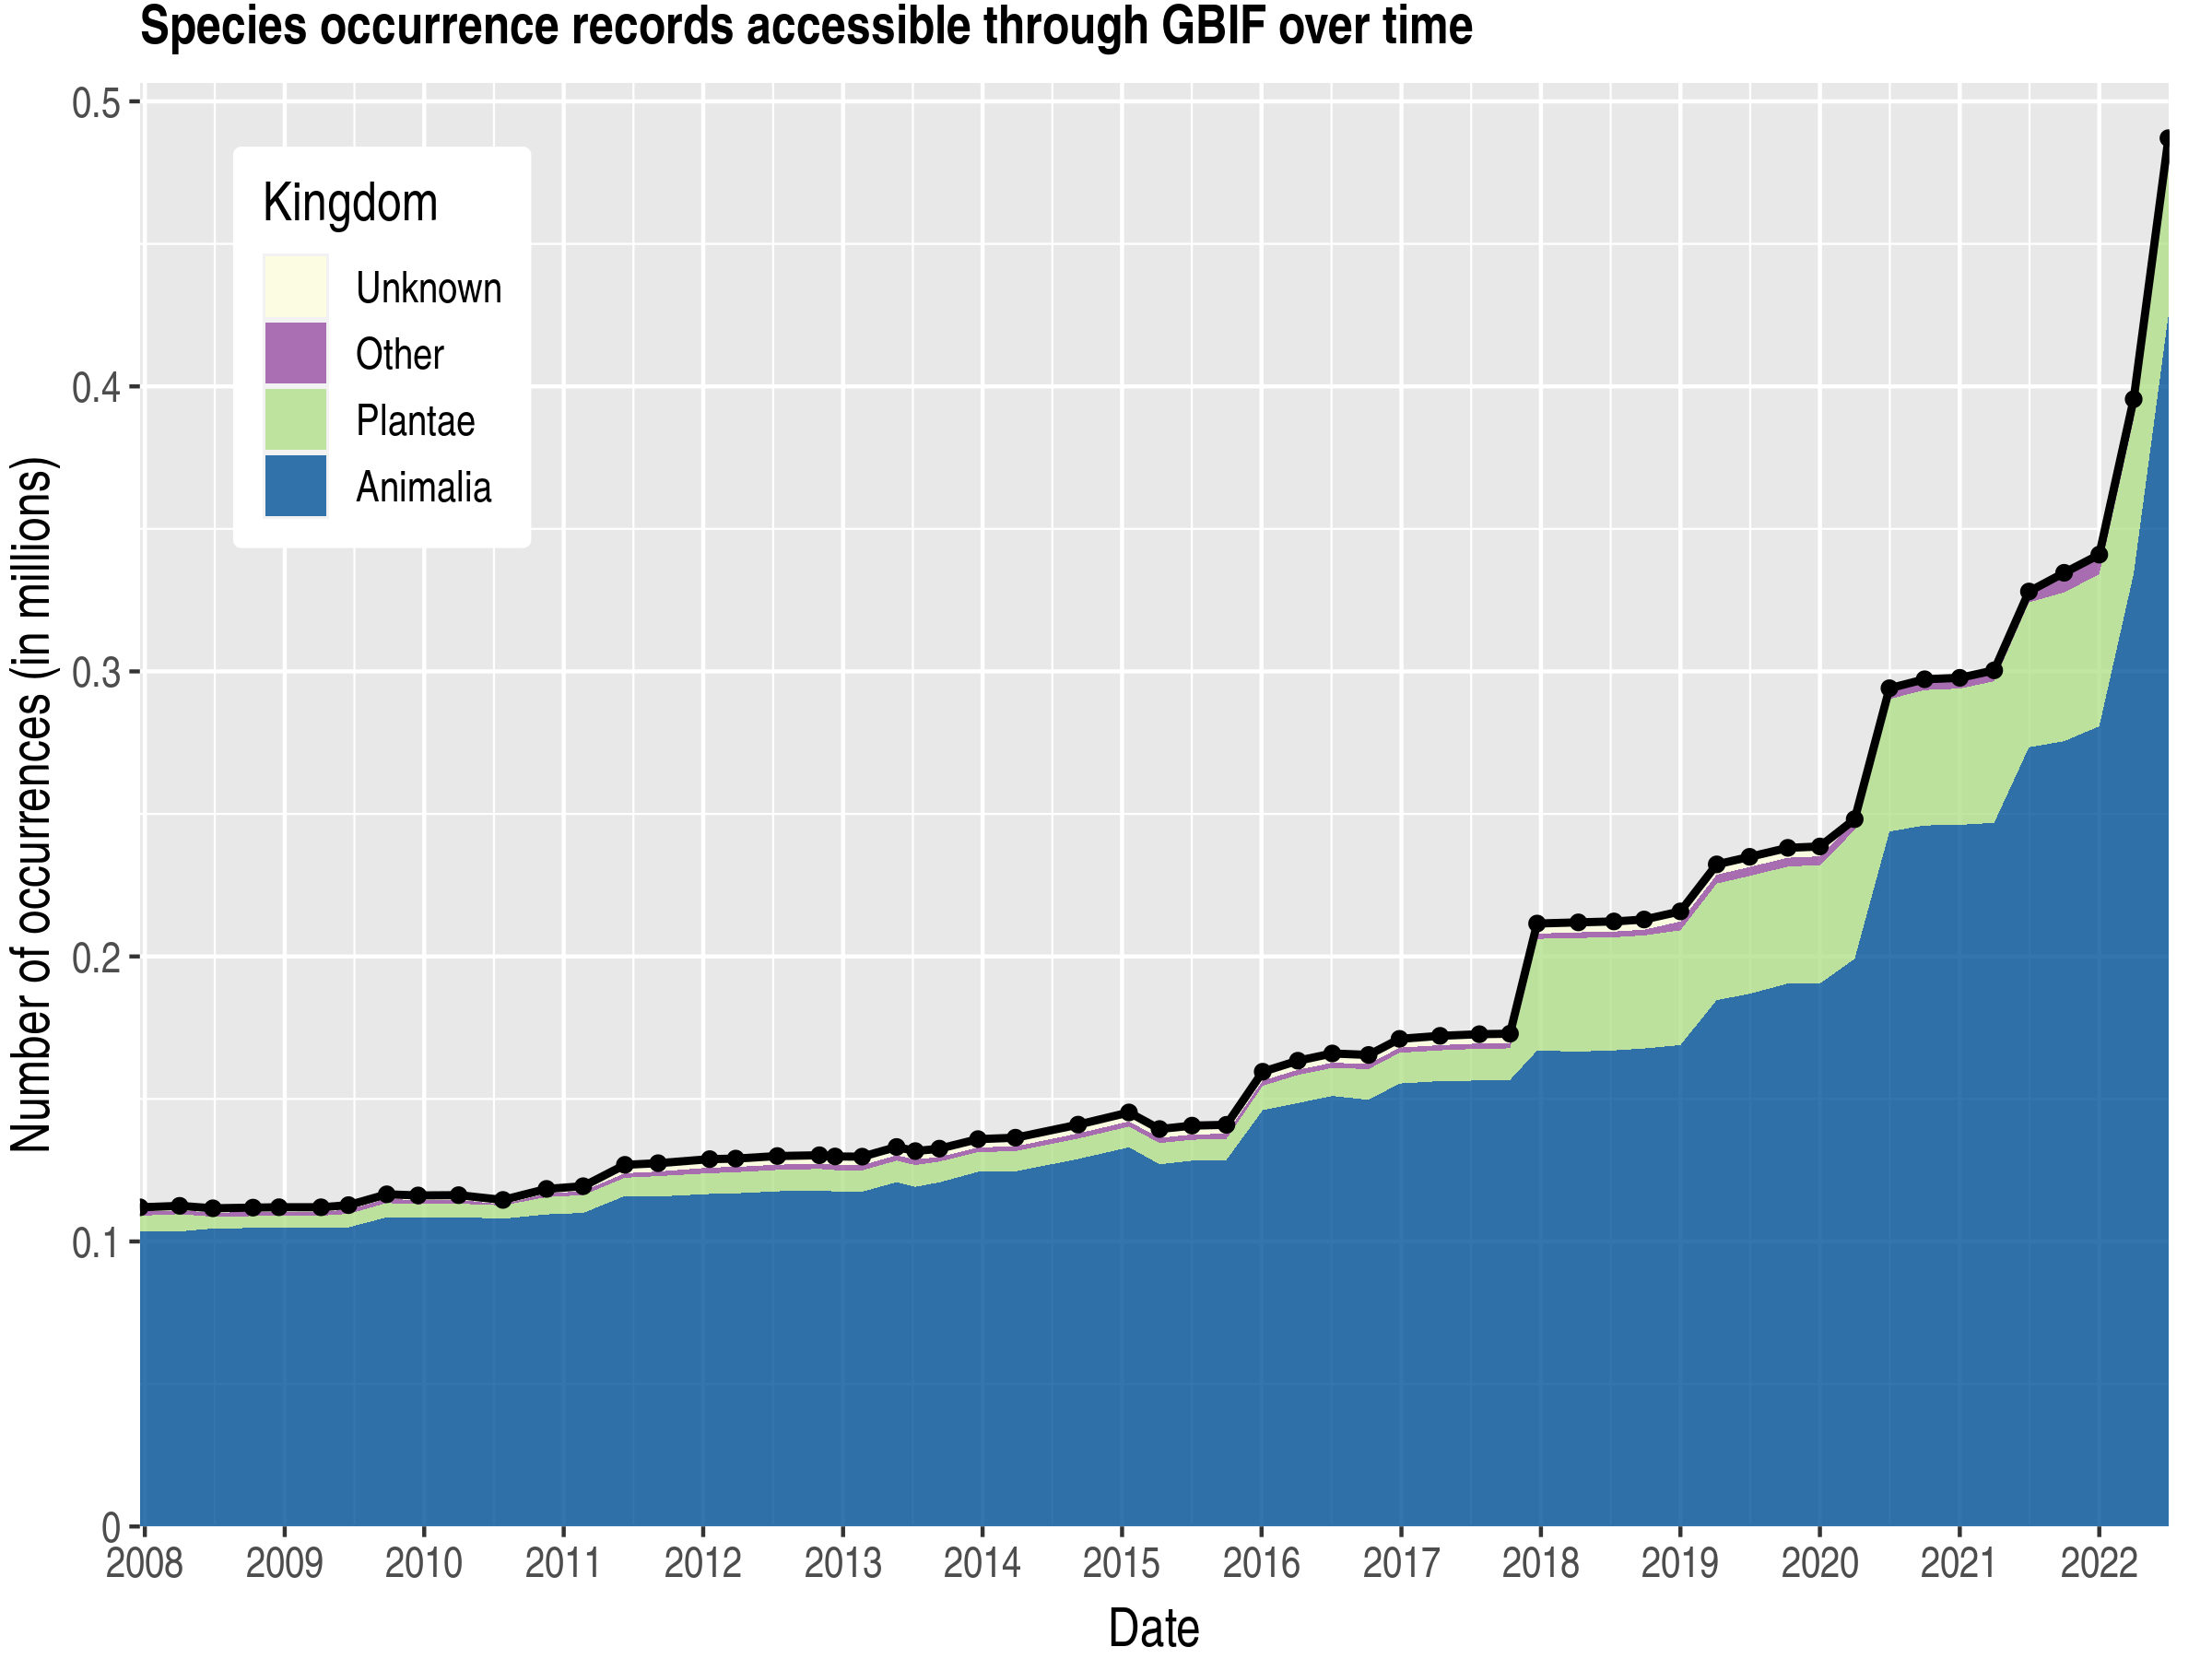 Data trend of records by kingdom about Mongolia